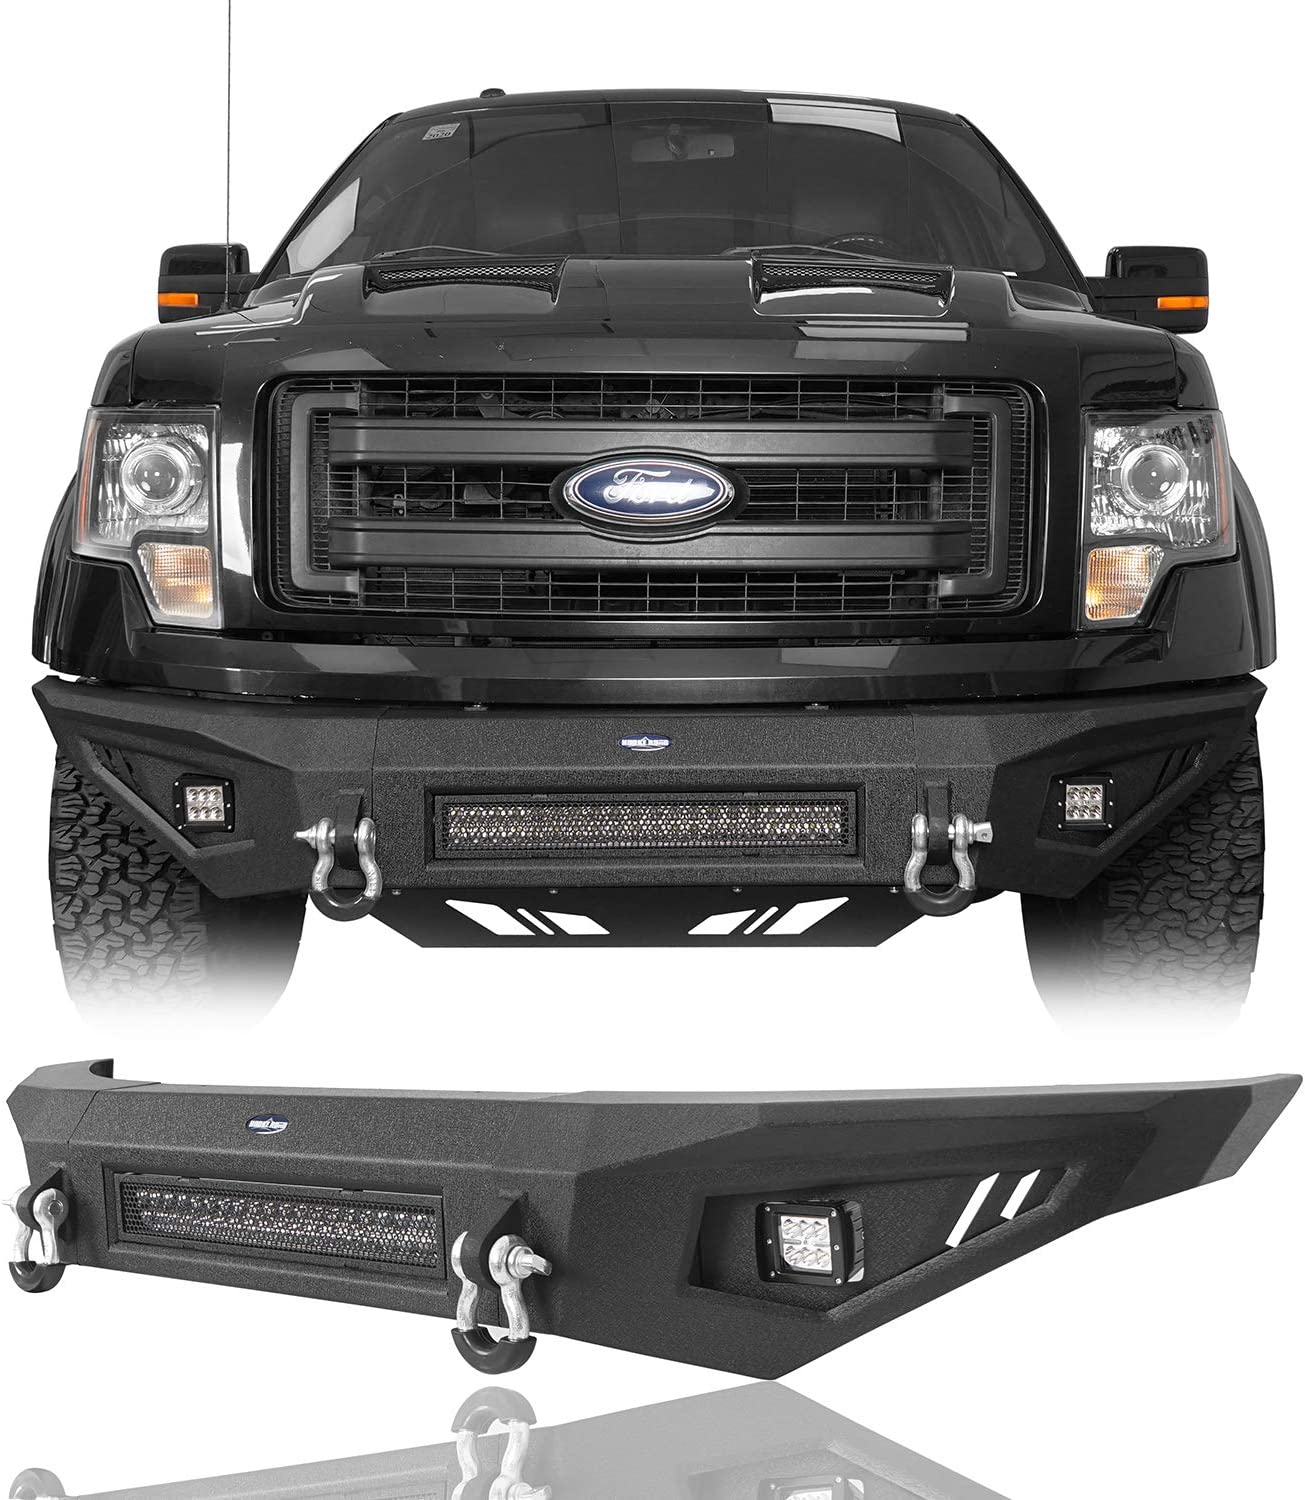 Amazon Com Hooke Road F150 Steel Full Width Front Bumper W 120w Led Light Bar Compatible With Ford F 150 Excluding Raptor 2009 2010 2011 2012 2013 2014 Pickup Truck Automotive